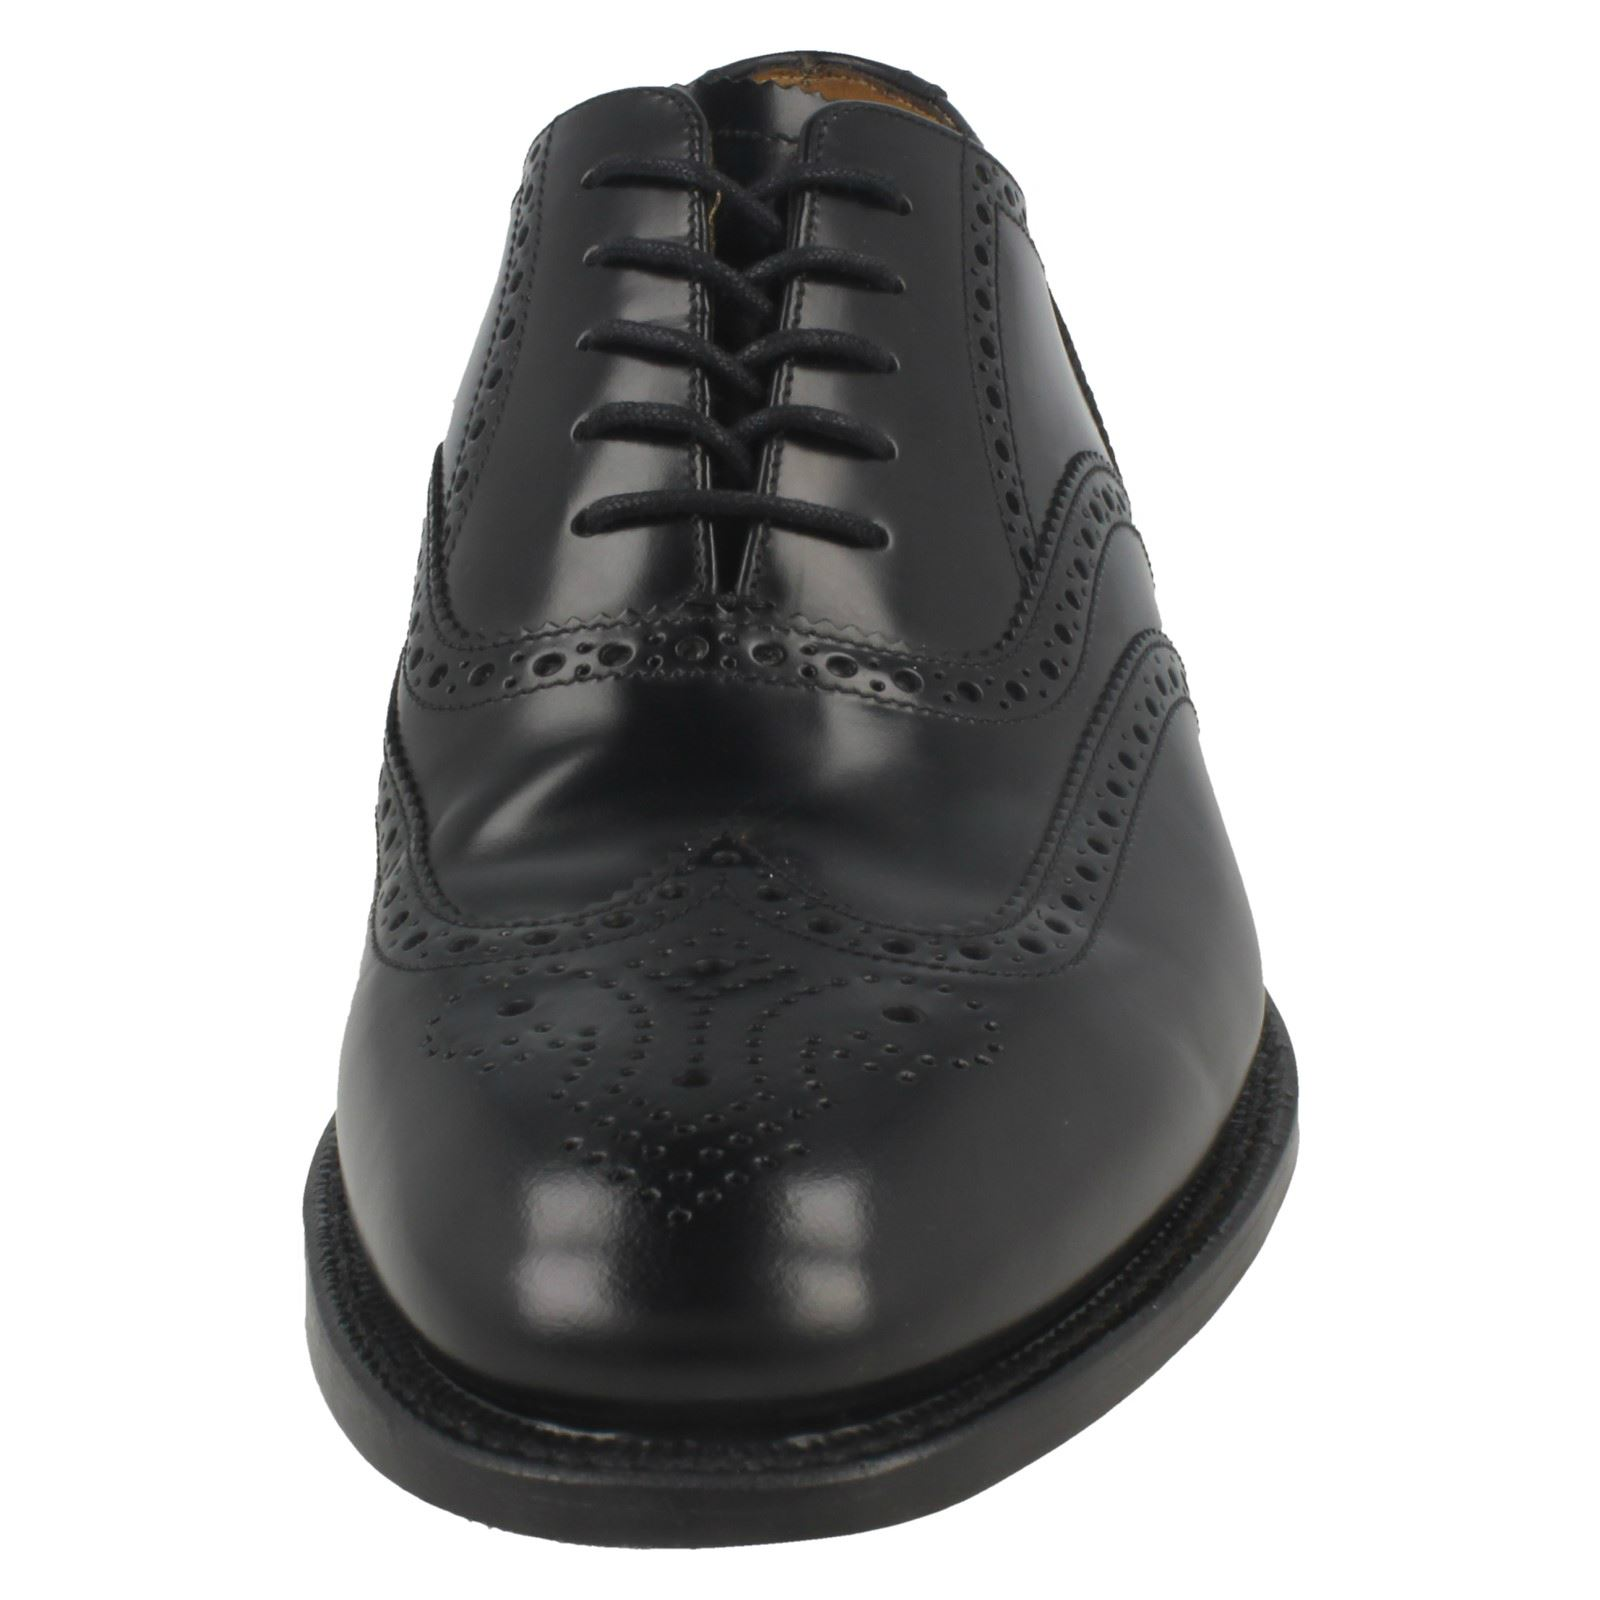 Mens Loake Polished Leather Leather Leather Smart Brogues '202B' ab5c3d